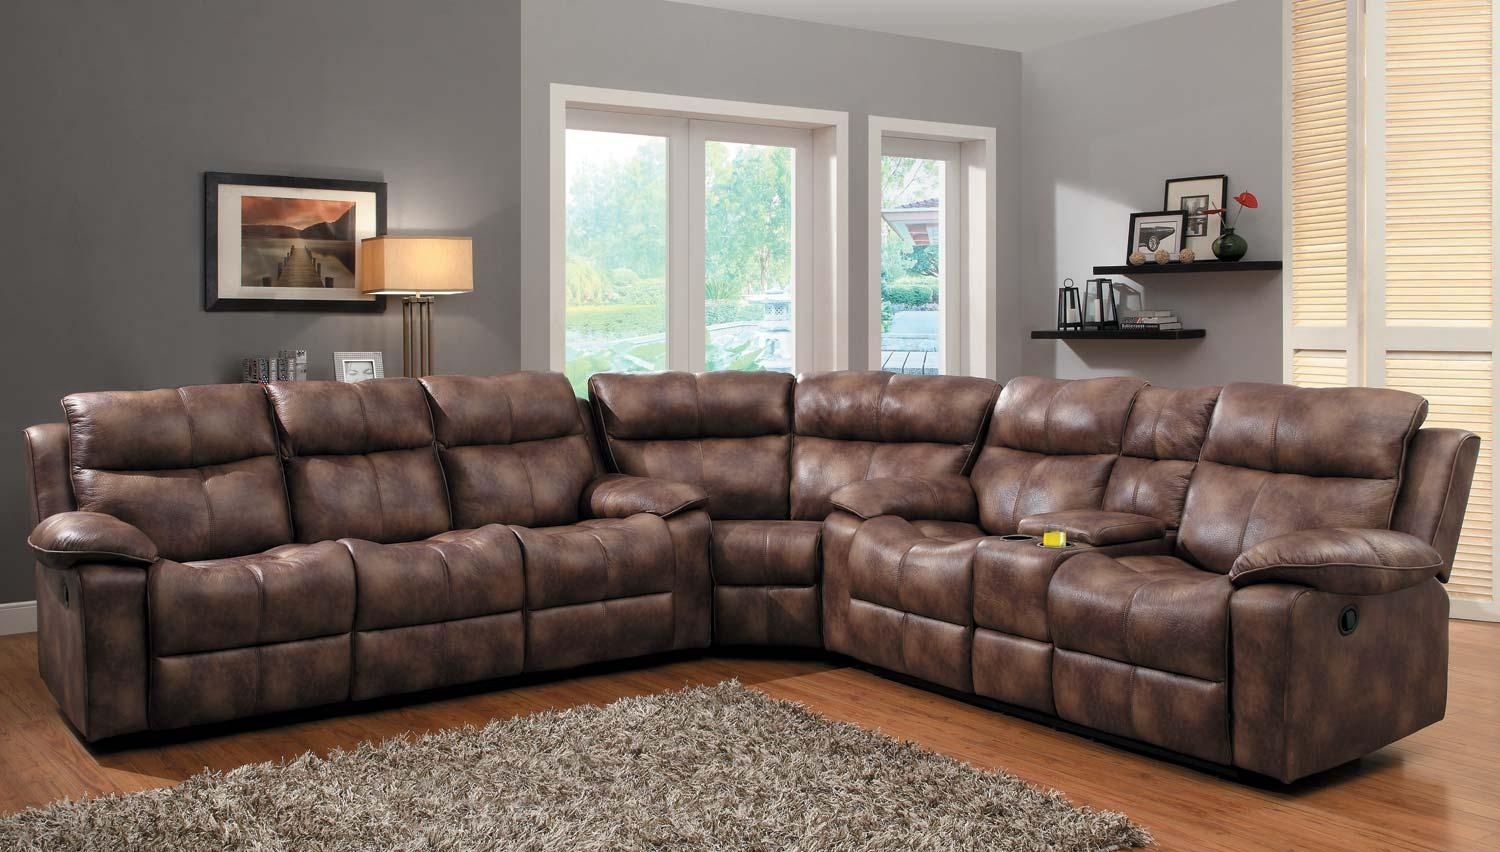 Homelegance Brooklyn Heights Reclining Sectional Sofa Set Throughout Recliner Sectional Sofas (Image 11 of 22)